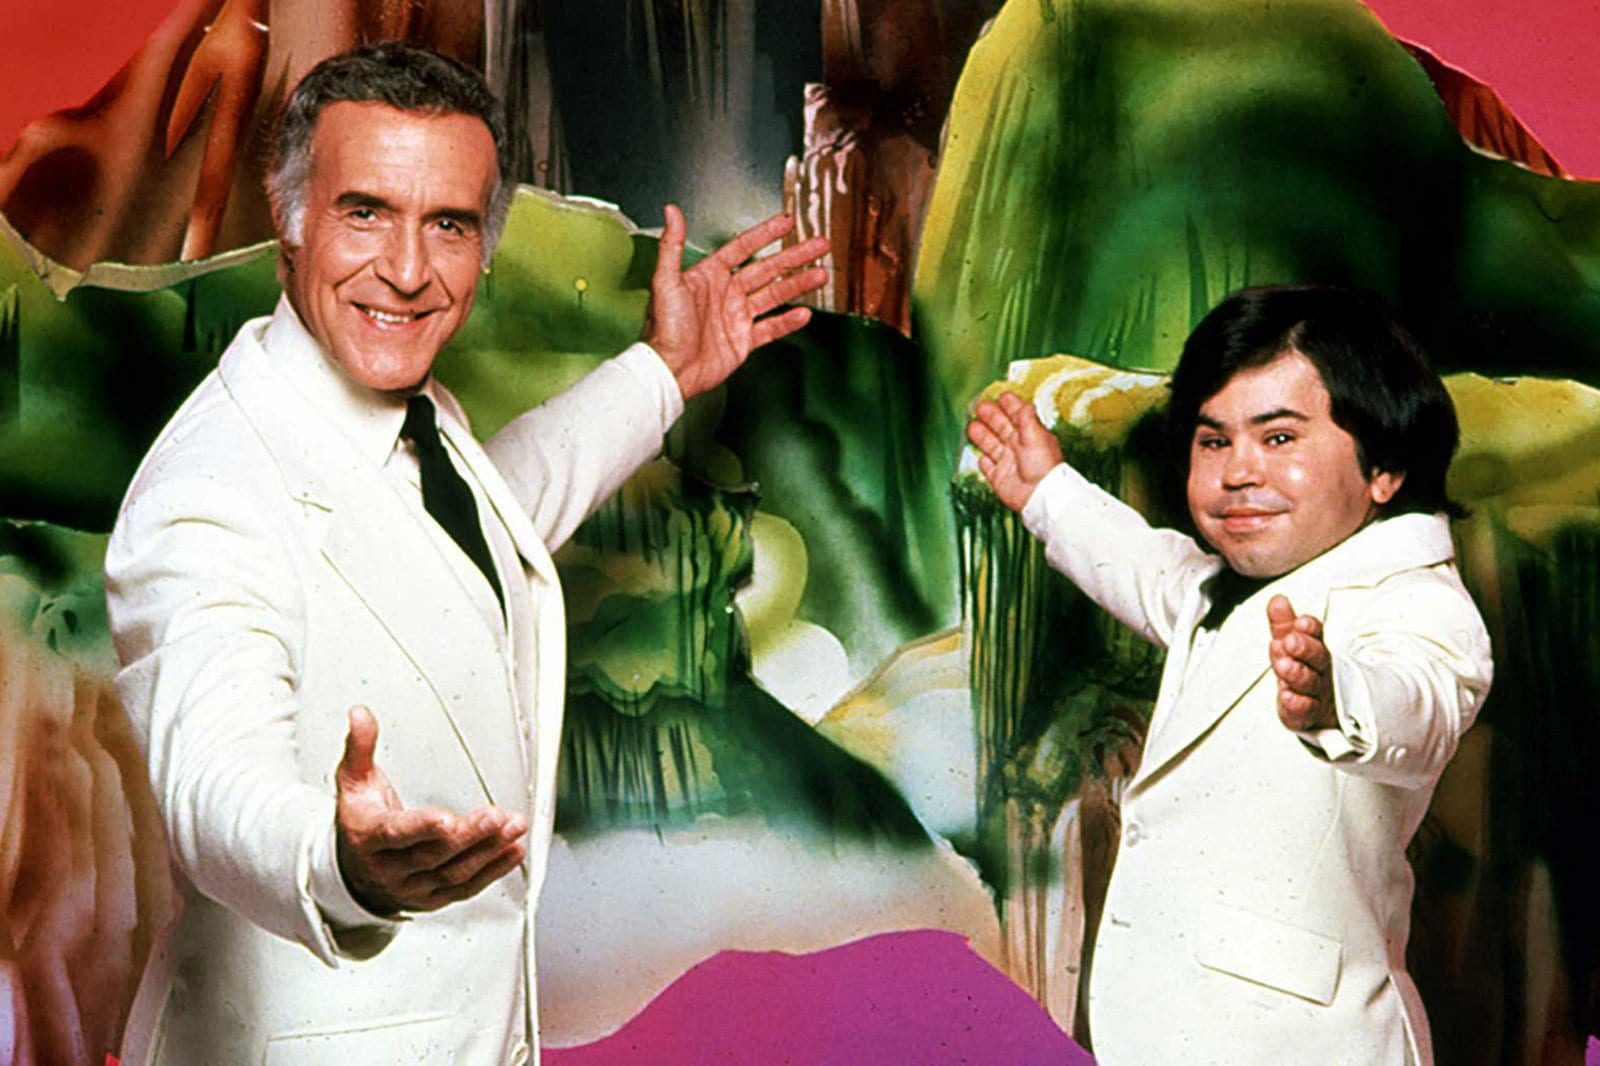 Ricardo Montalban and Hervé Villechaize in the original Fantasy Island series